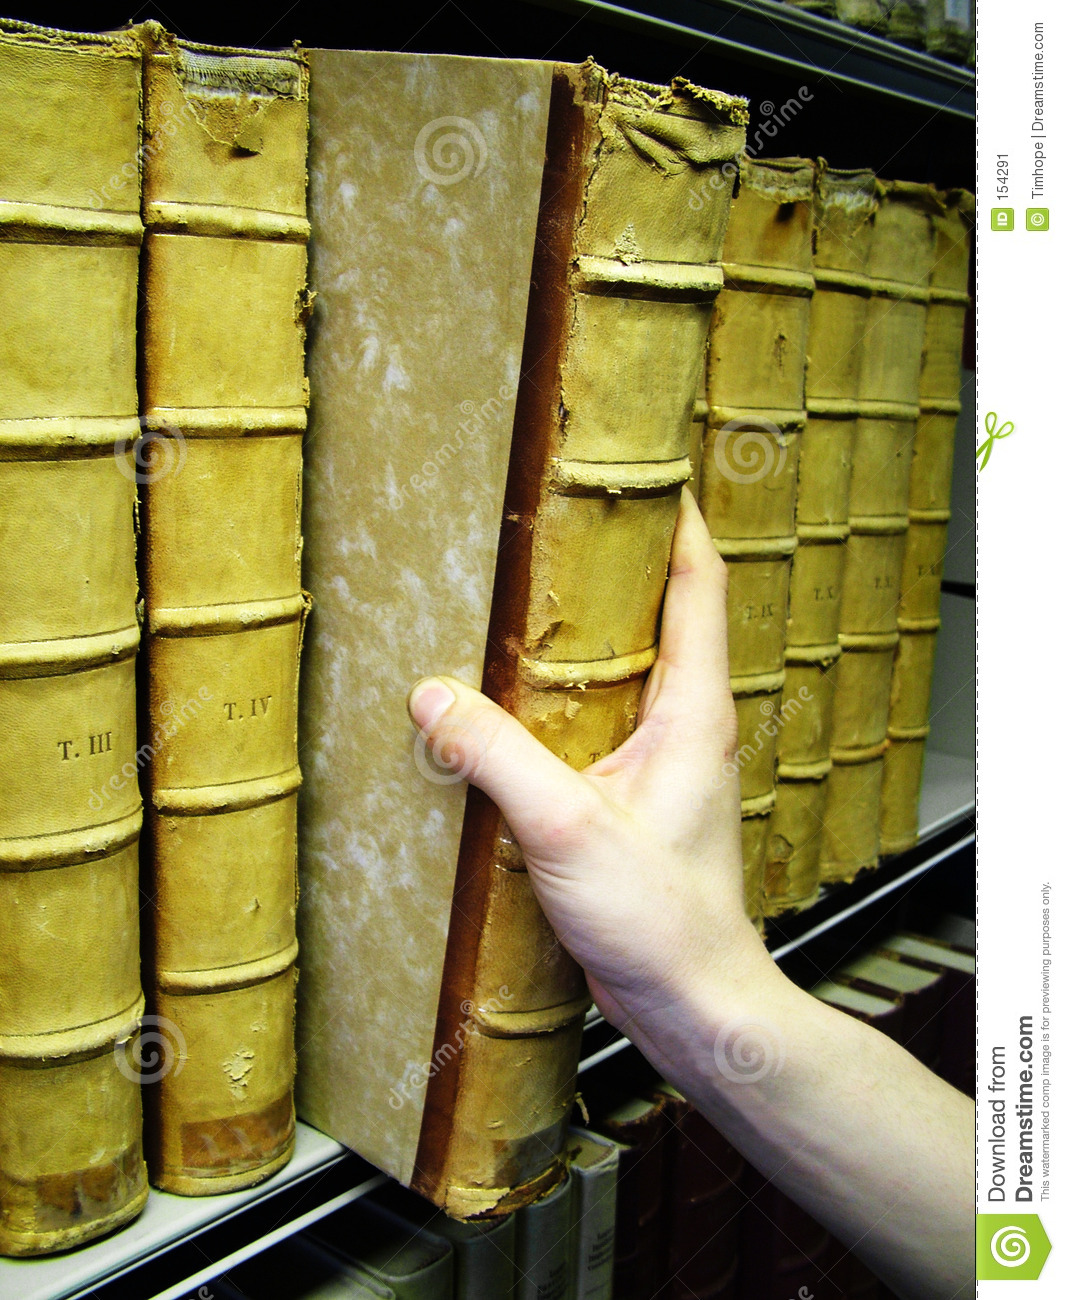 Persons hand removing old book from bookshelf